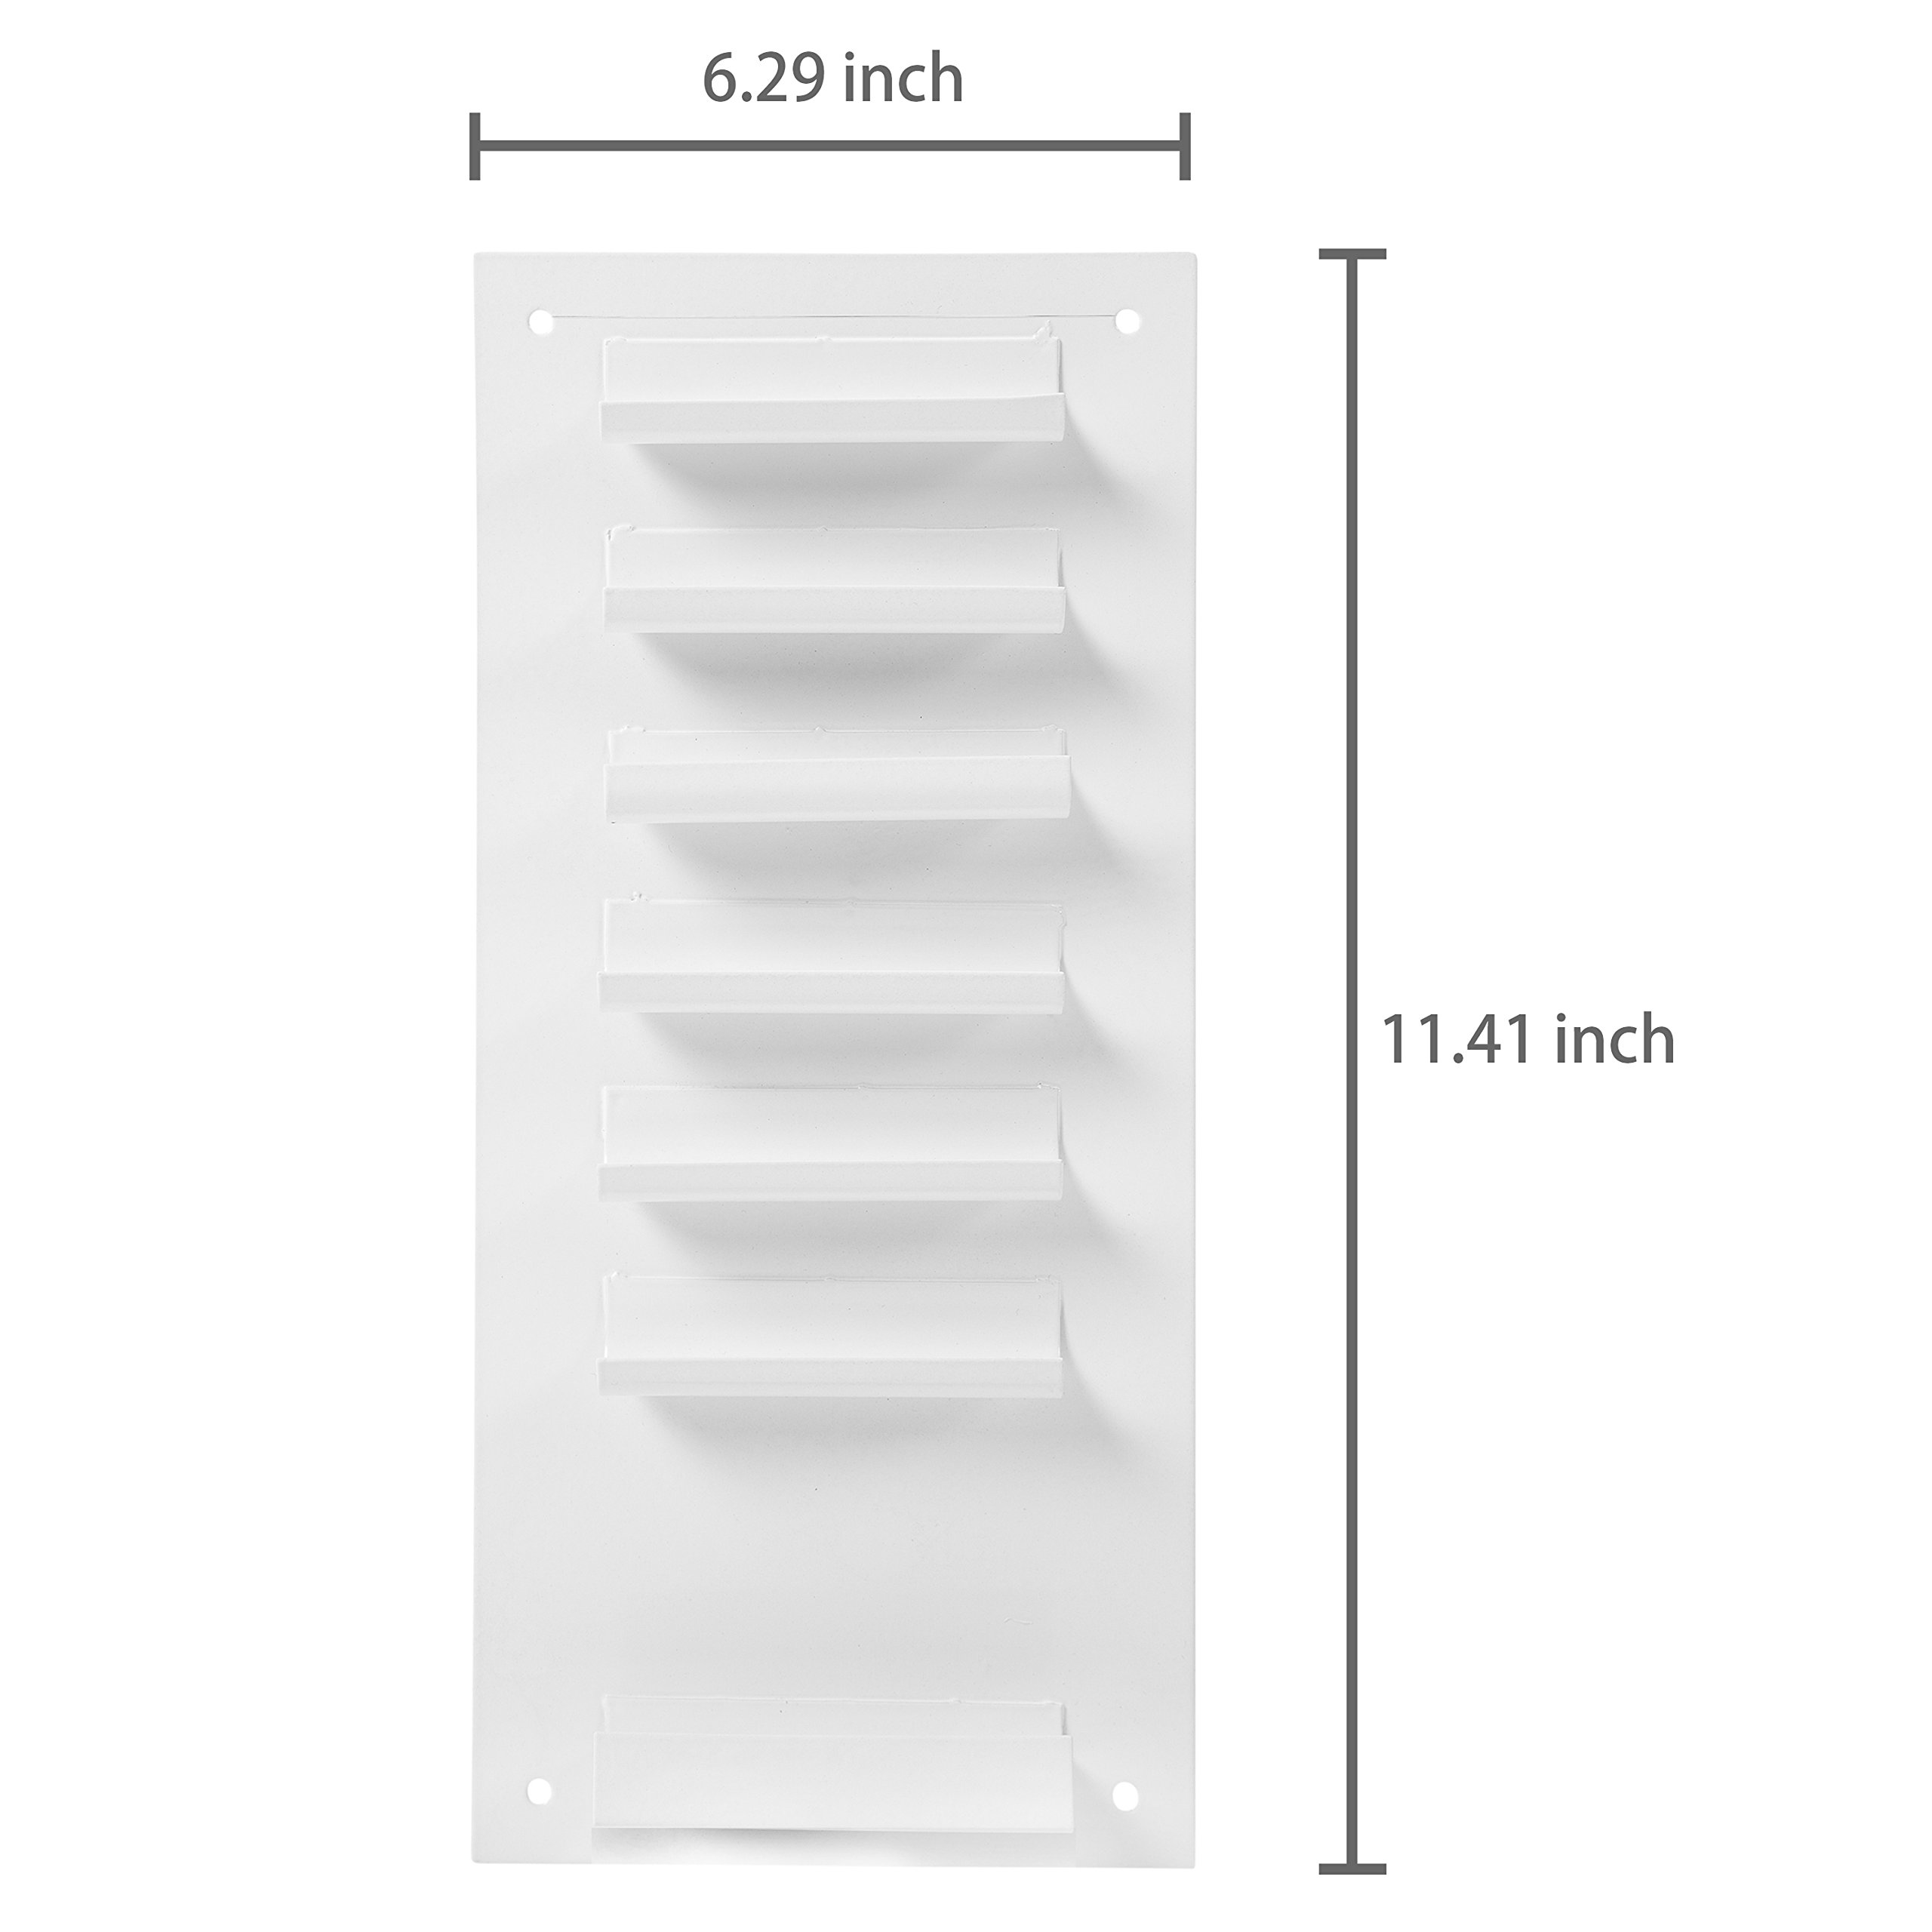 6-Slot Wall Mounted Metal Dry Erase Marker and Eraser Holder/Vertical Storage System, White (Set of 2) by MyGift (Image #5)